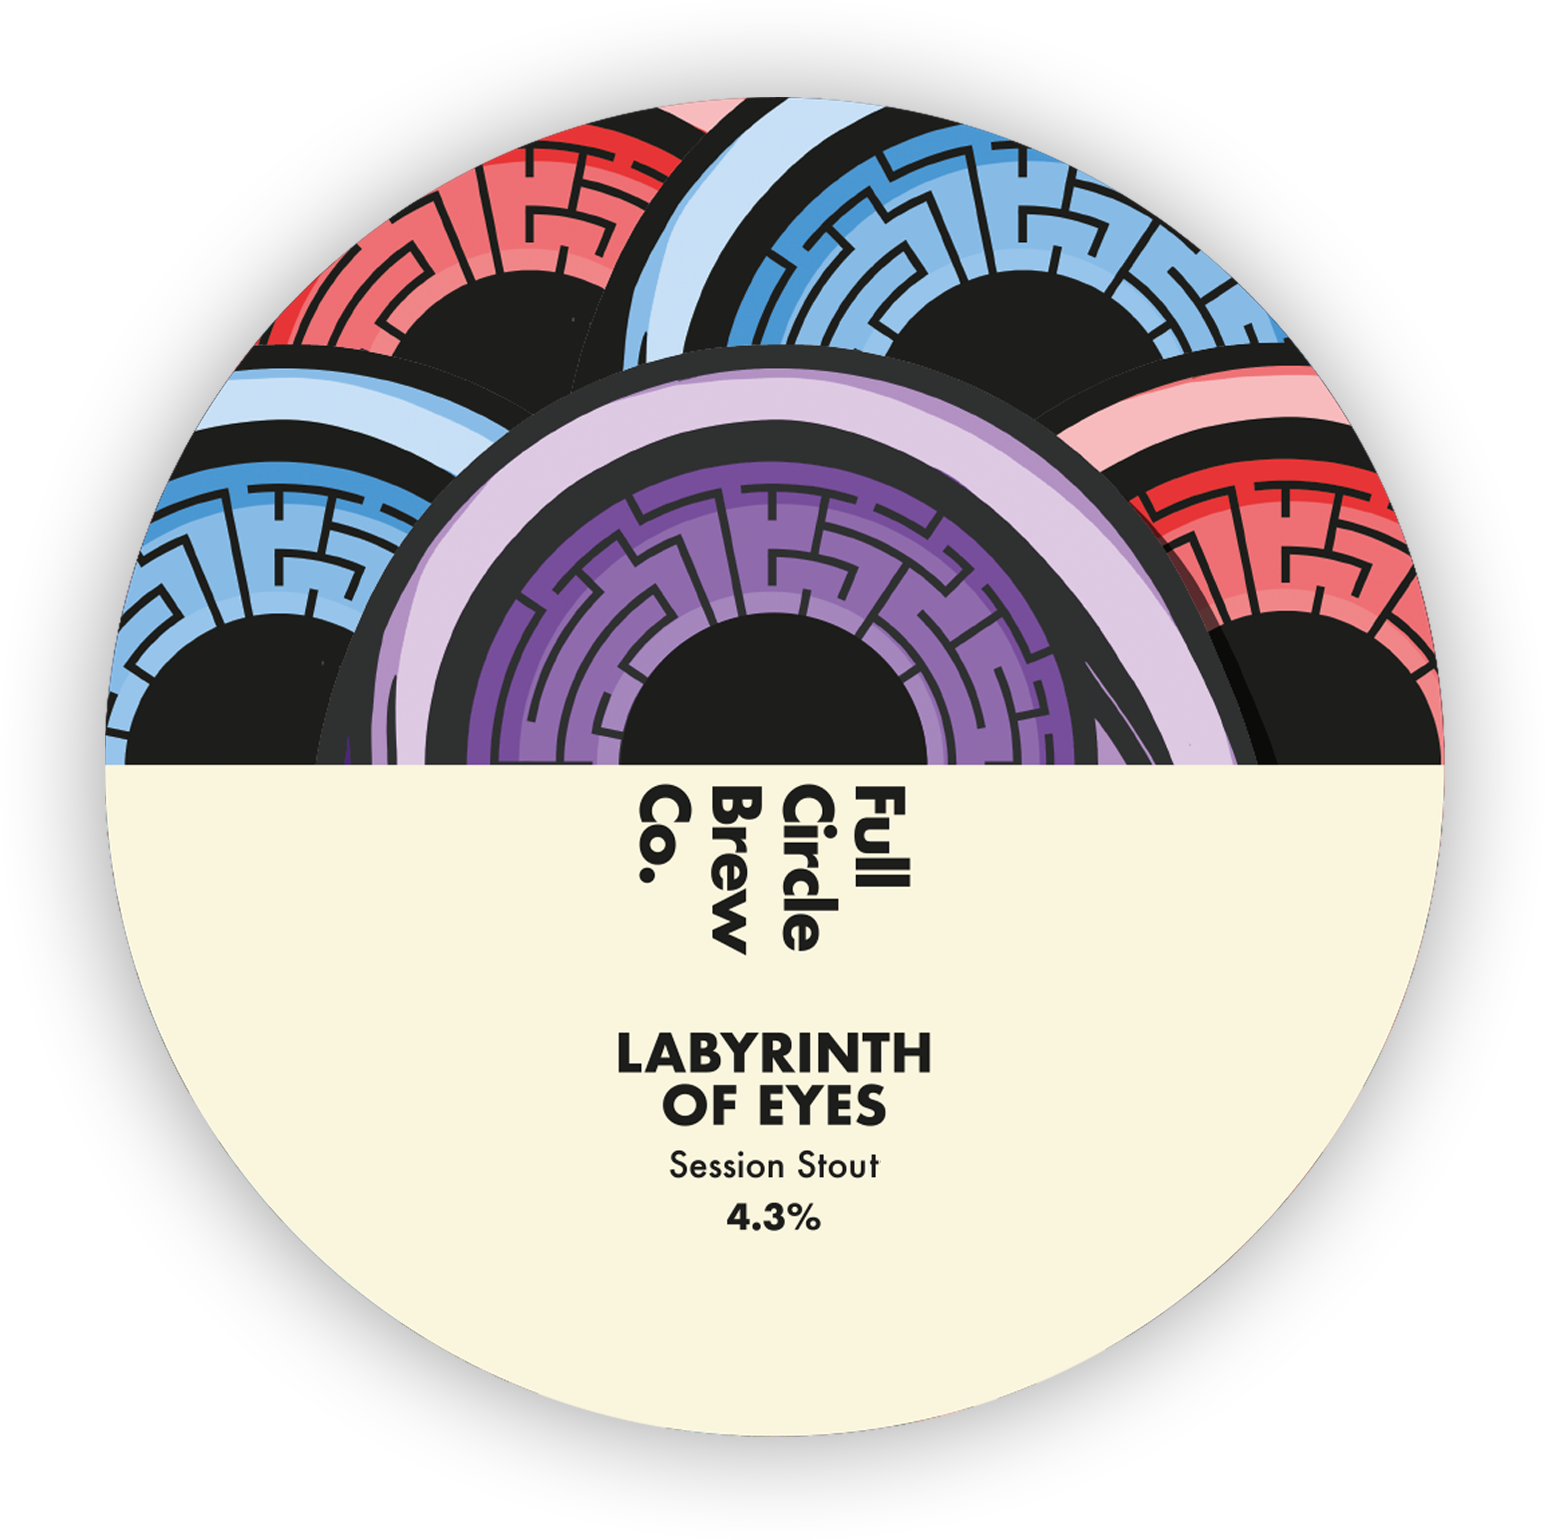 Labyrinth of Eyes, Session Stout